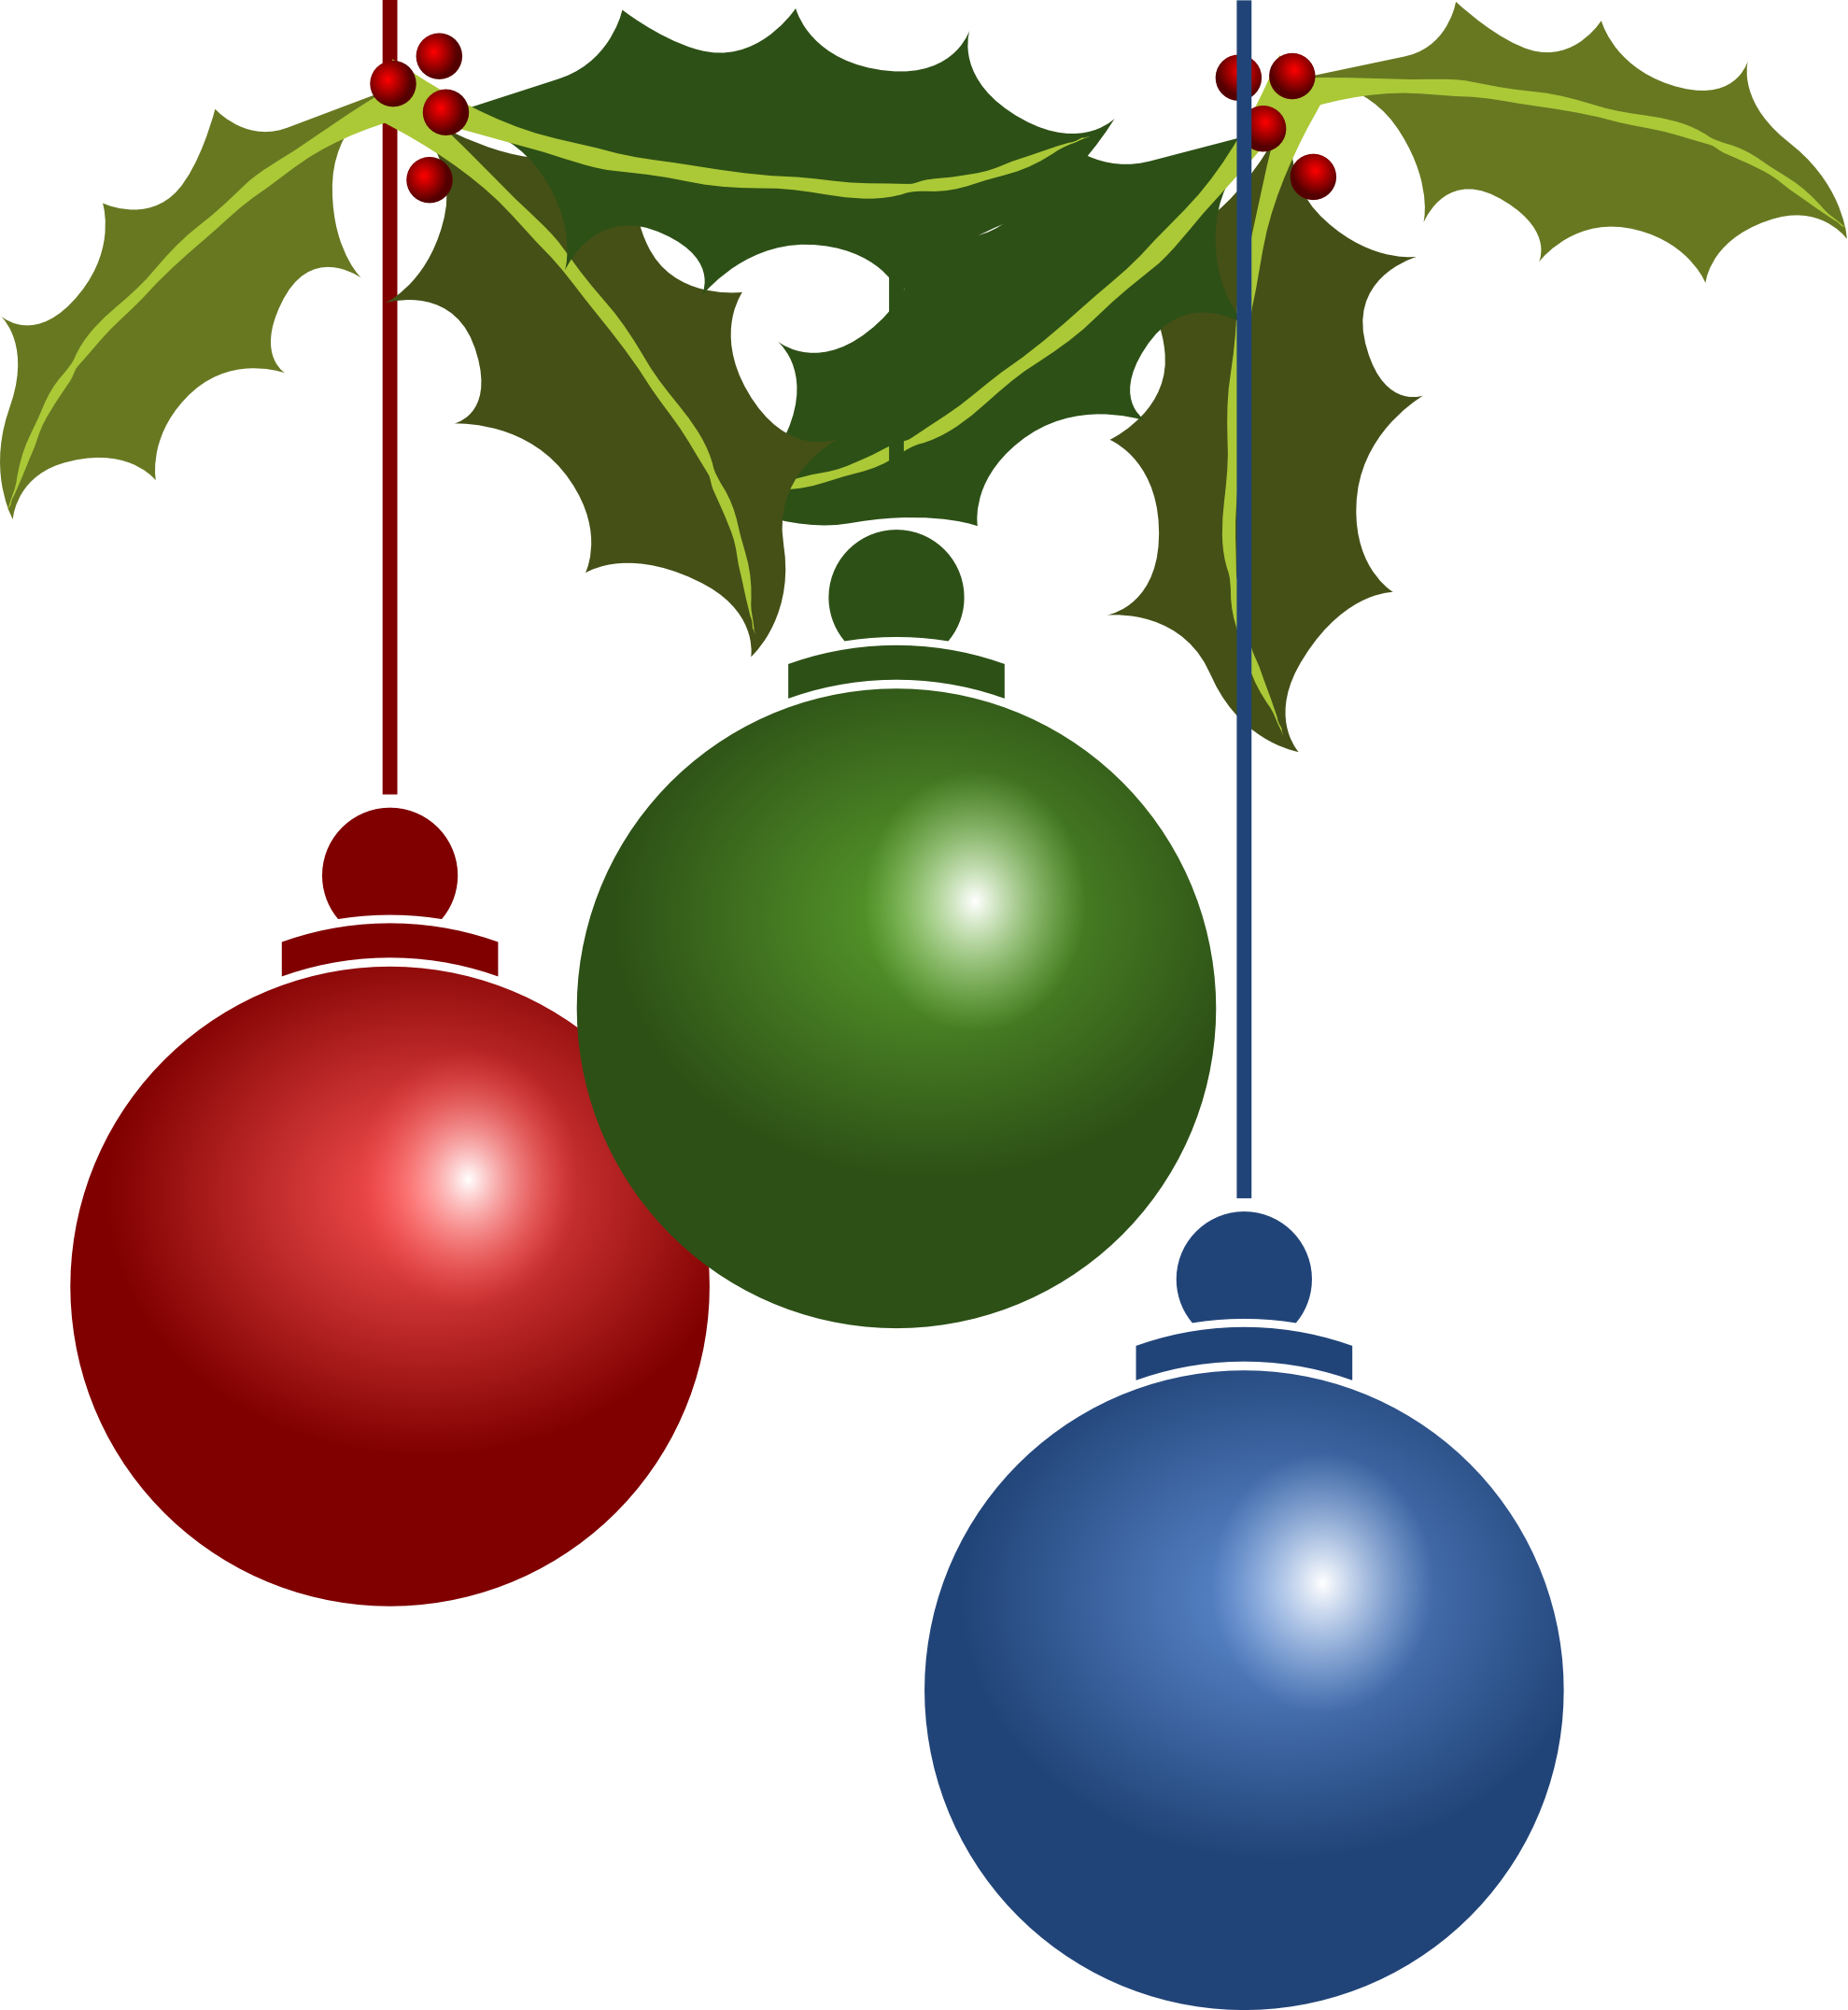 Holidays Clip Art - Clipart library